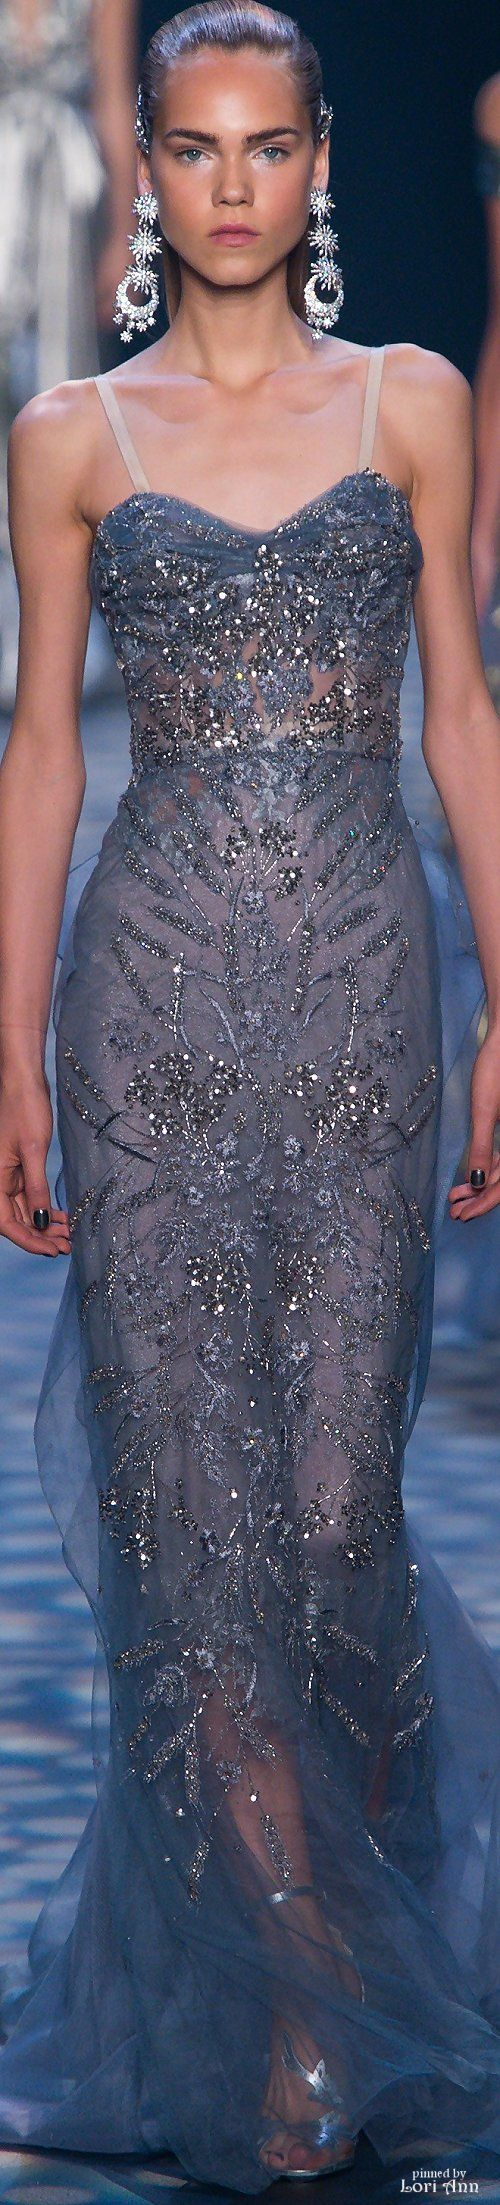 Marchesa Spring 2017 RTW                                                                                                                                                                                 More